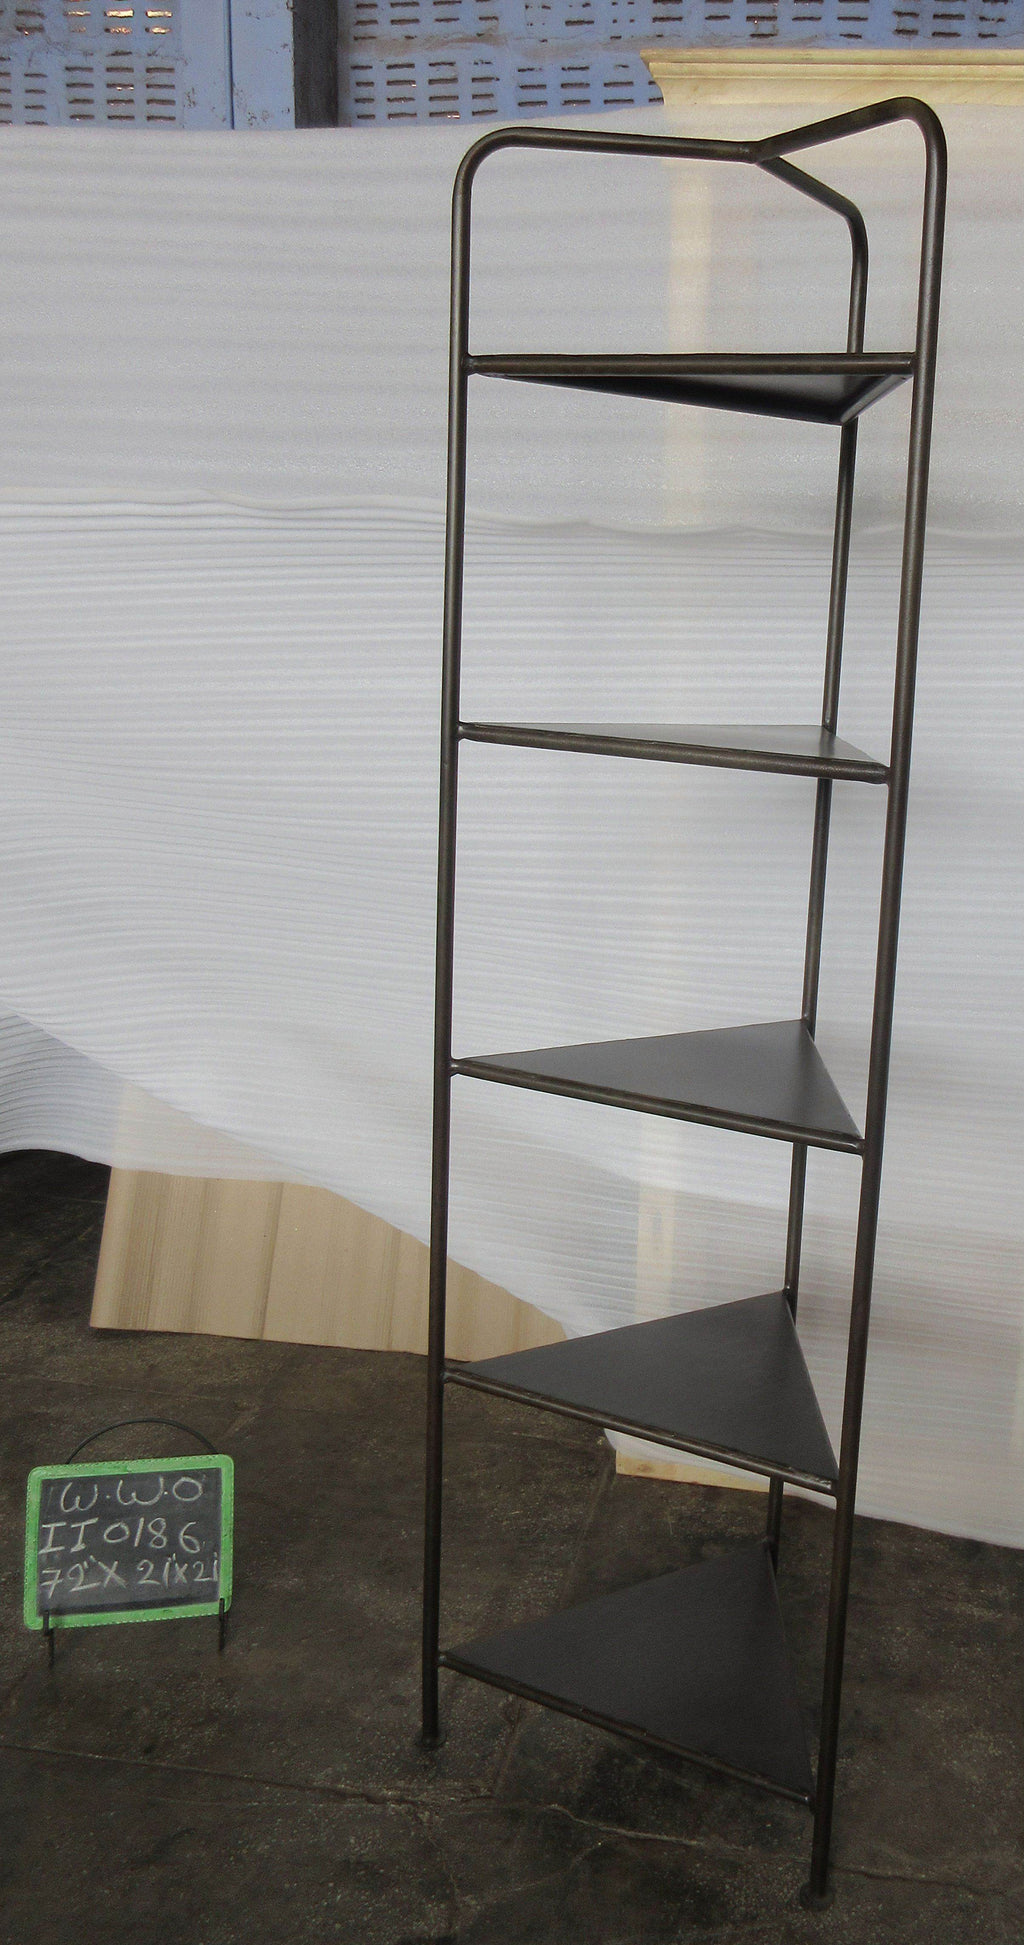 IRON CORNER SHELF